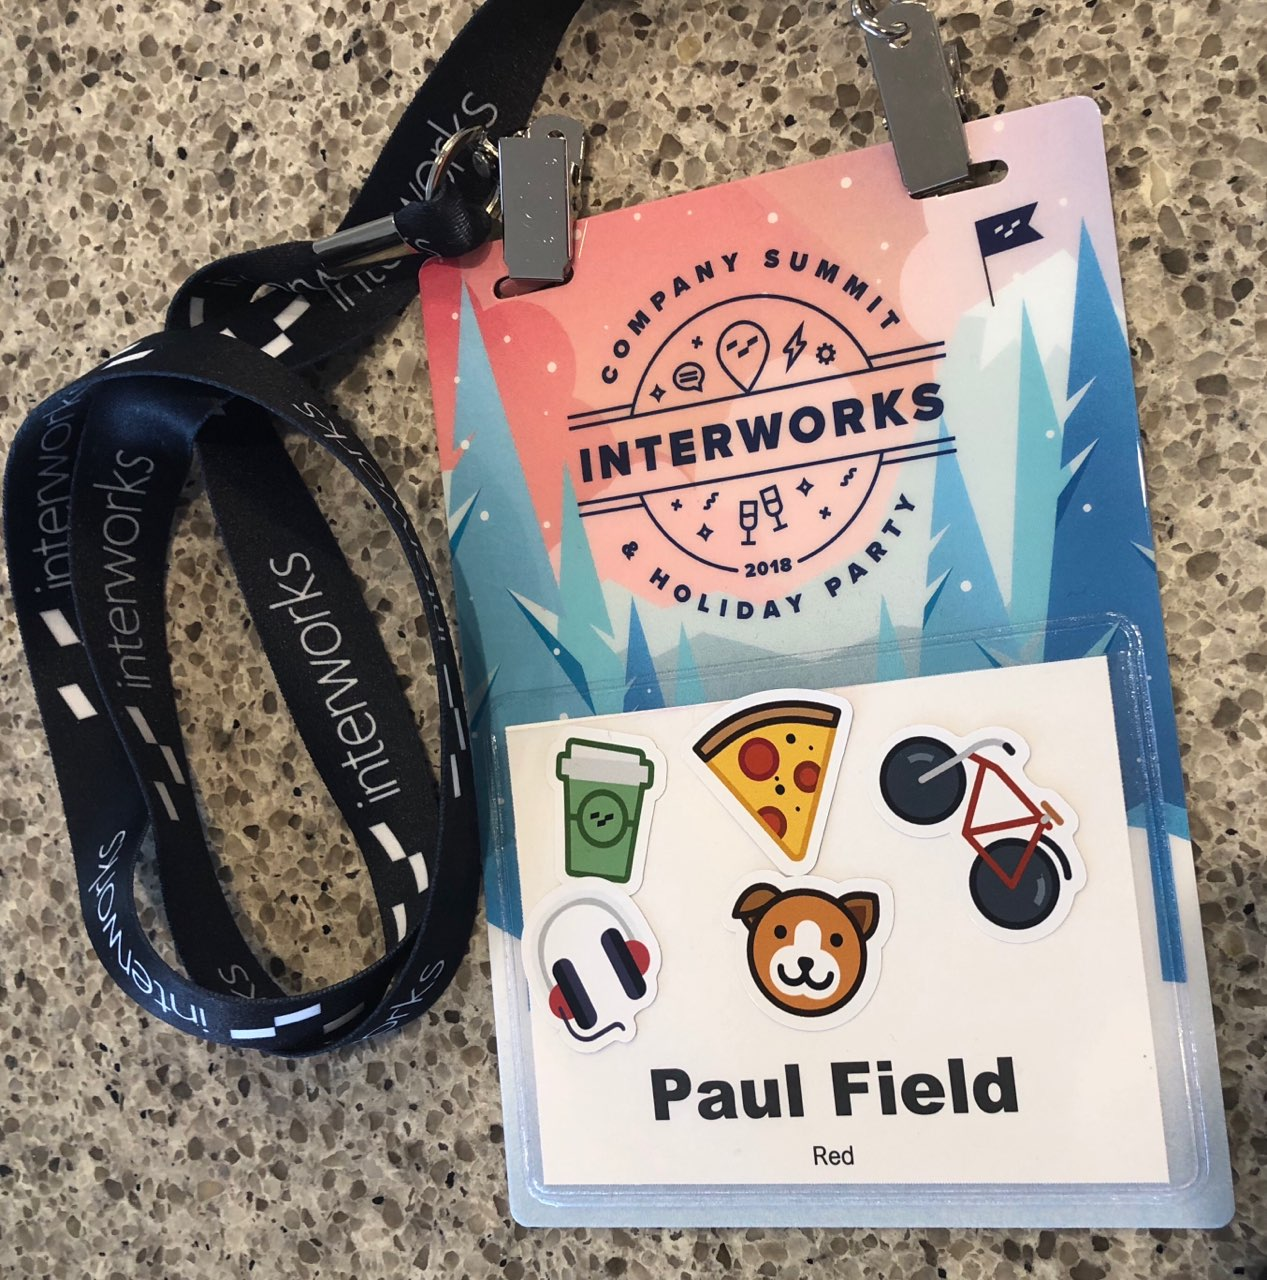 InterWorks Summit name badge